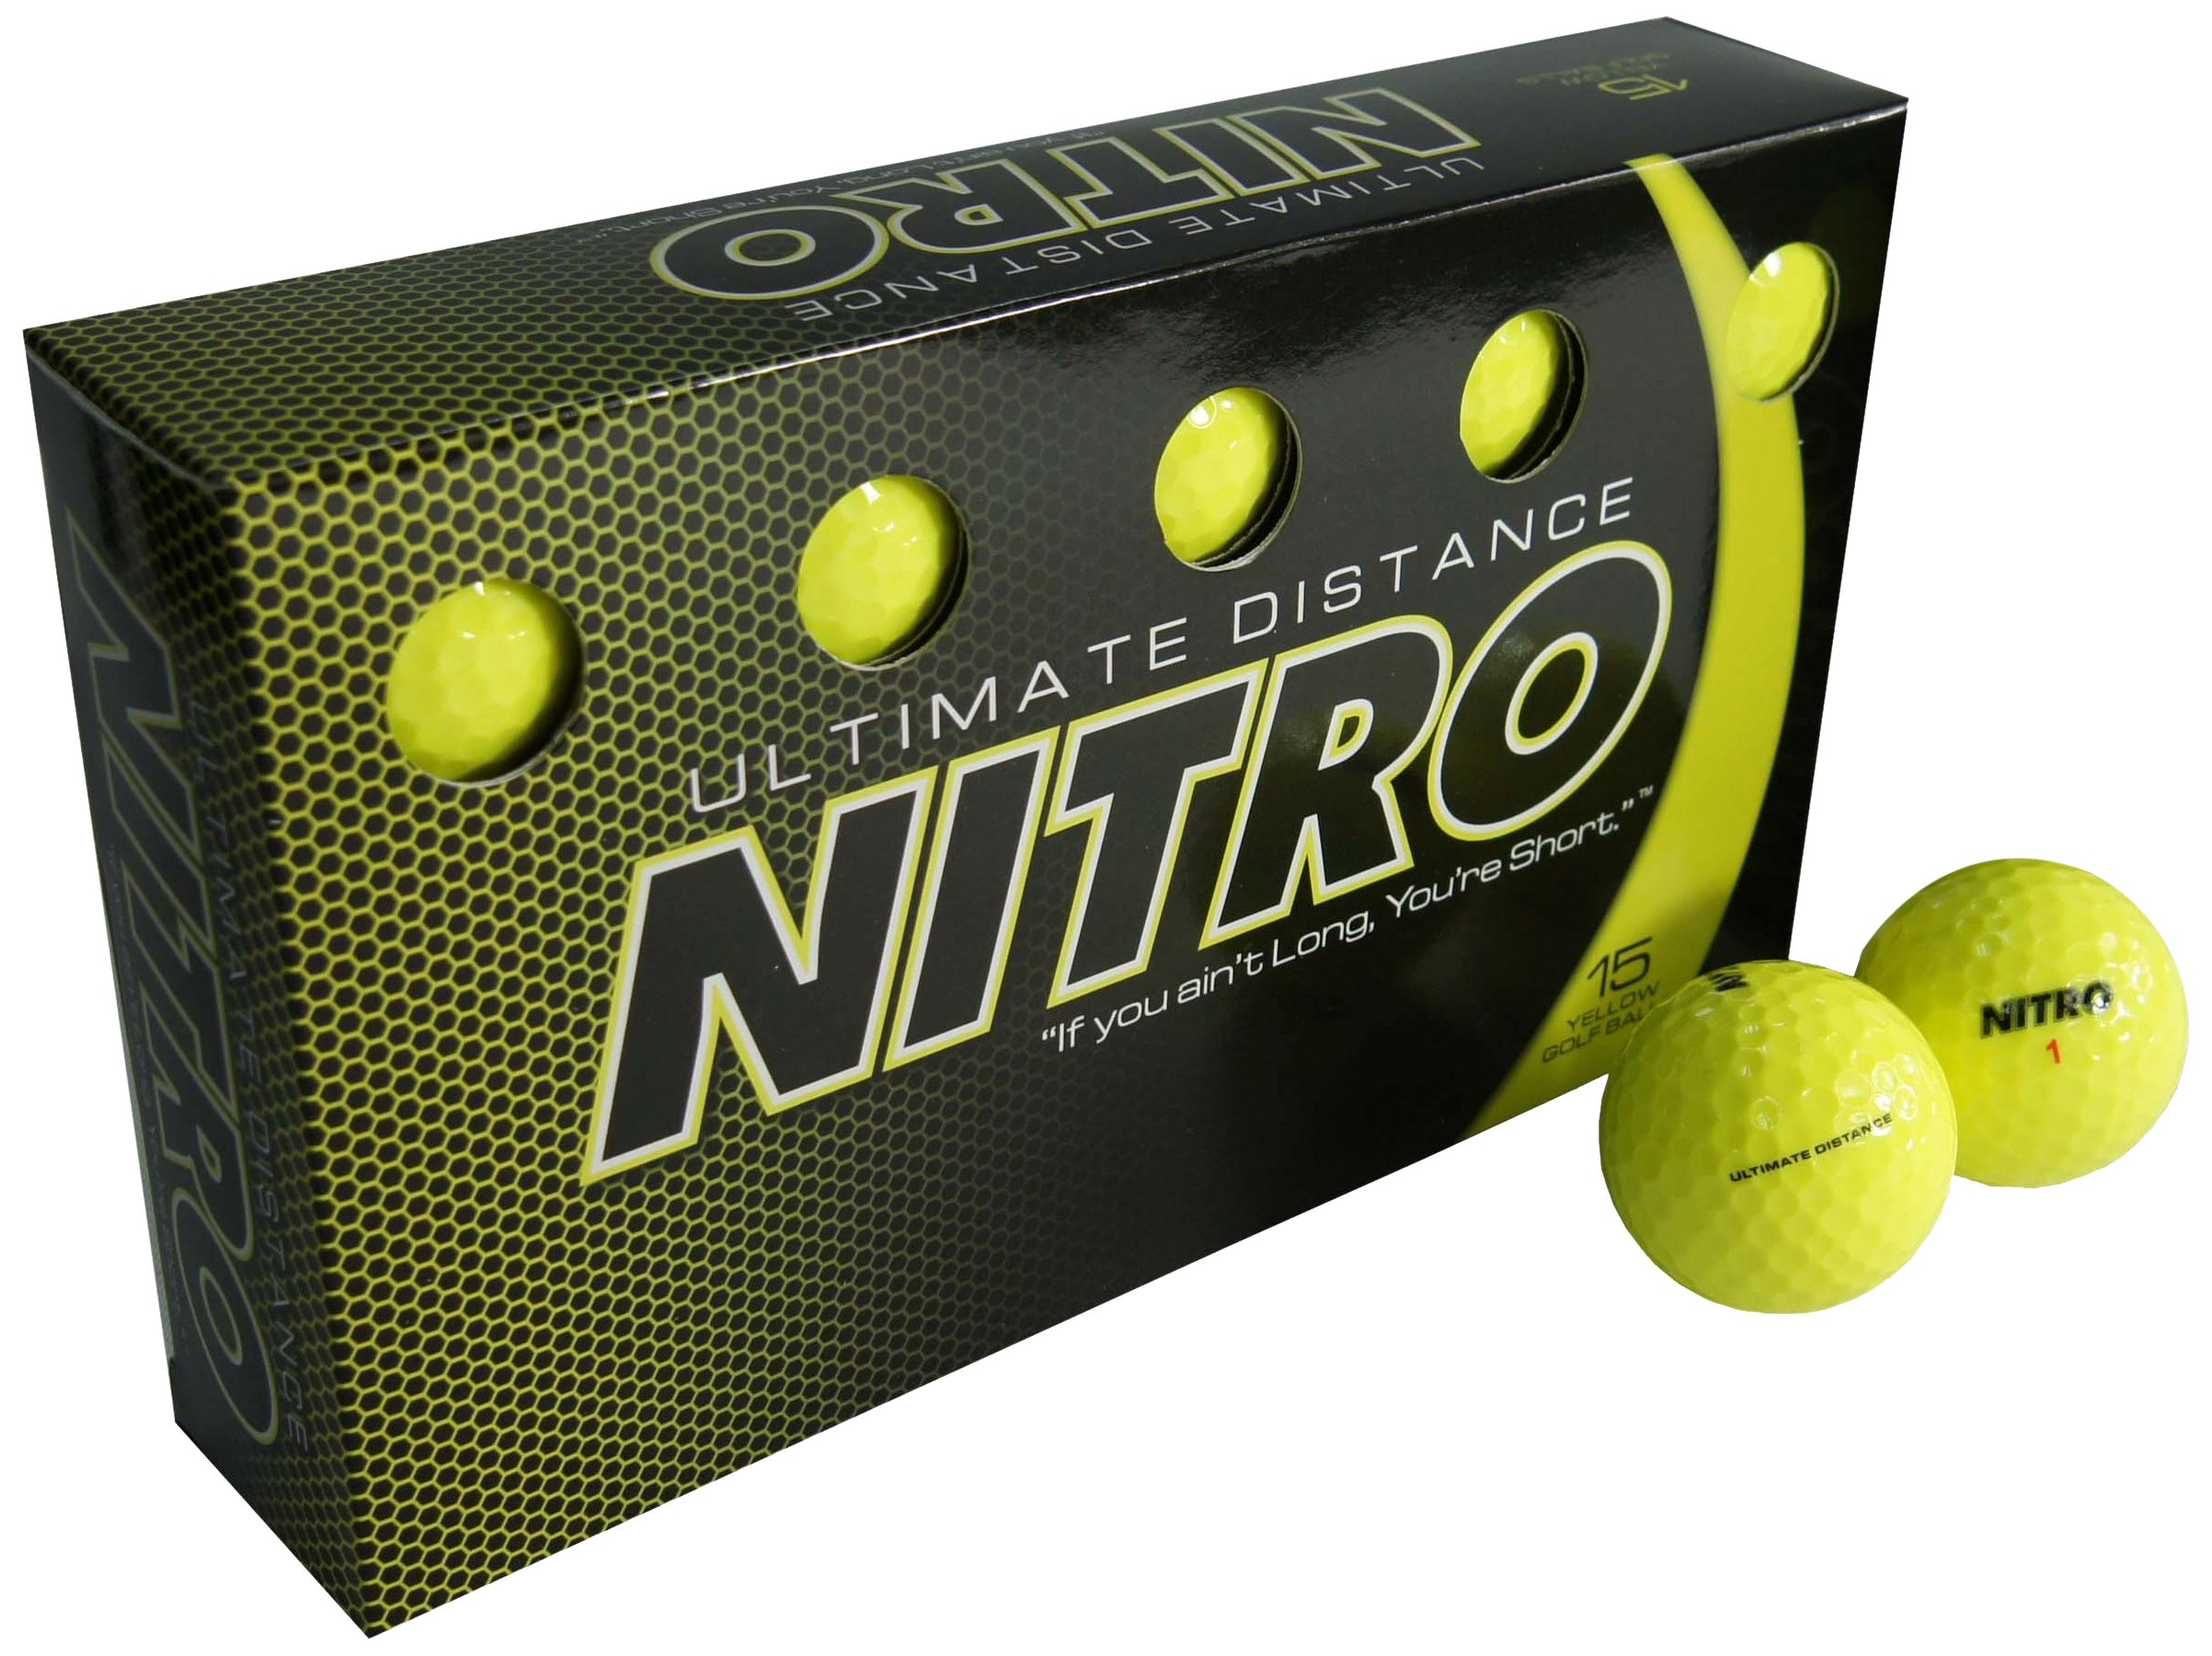 Nitro Long Distance High-Durability Golf Balls (15PK) All Levels Ultimate Distance Titanium Core High Velocity Great Stop & Sticking Ability Golf Balls USGA Approved-Total of 15-Yellow by Nitro